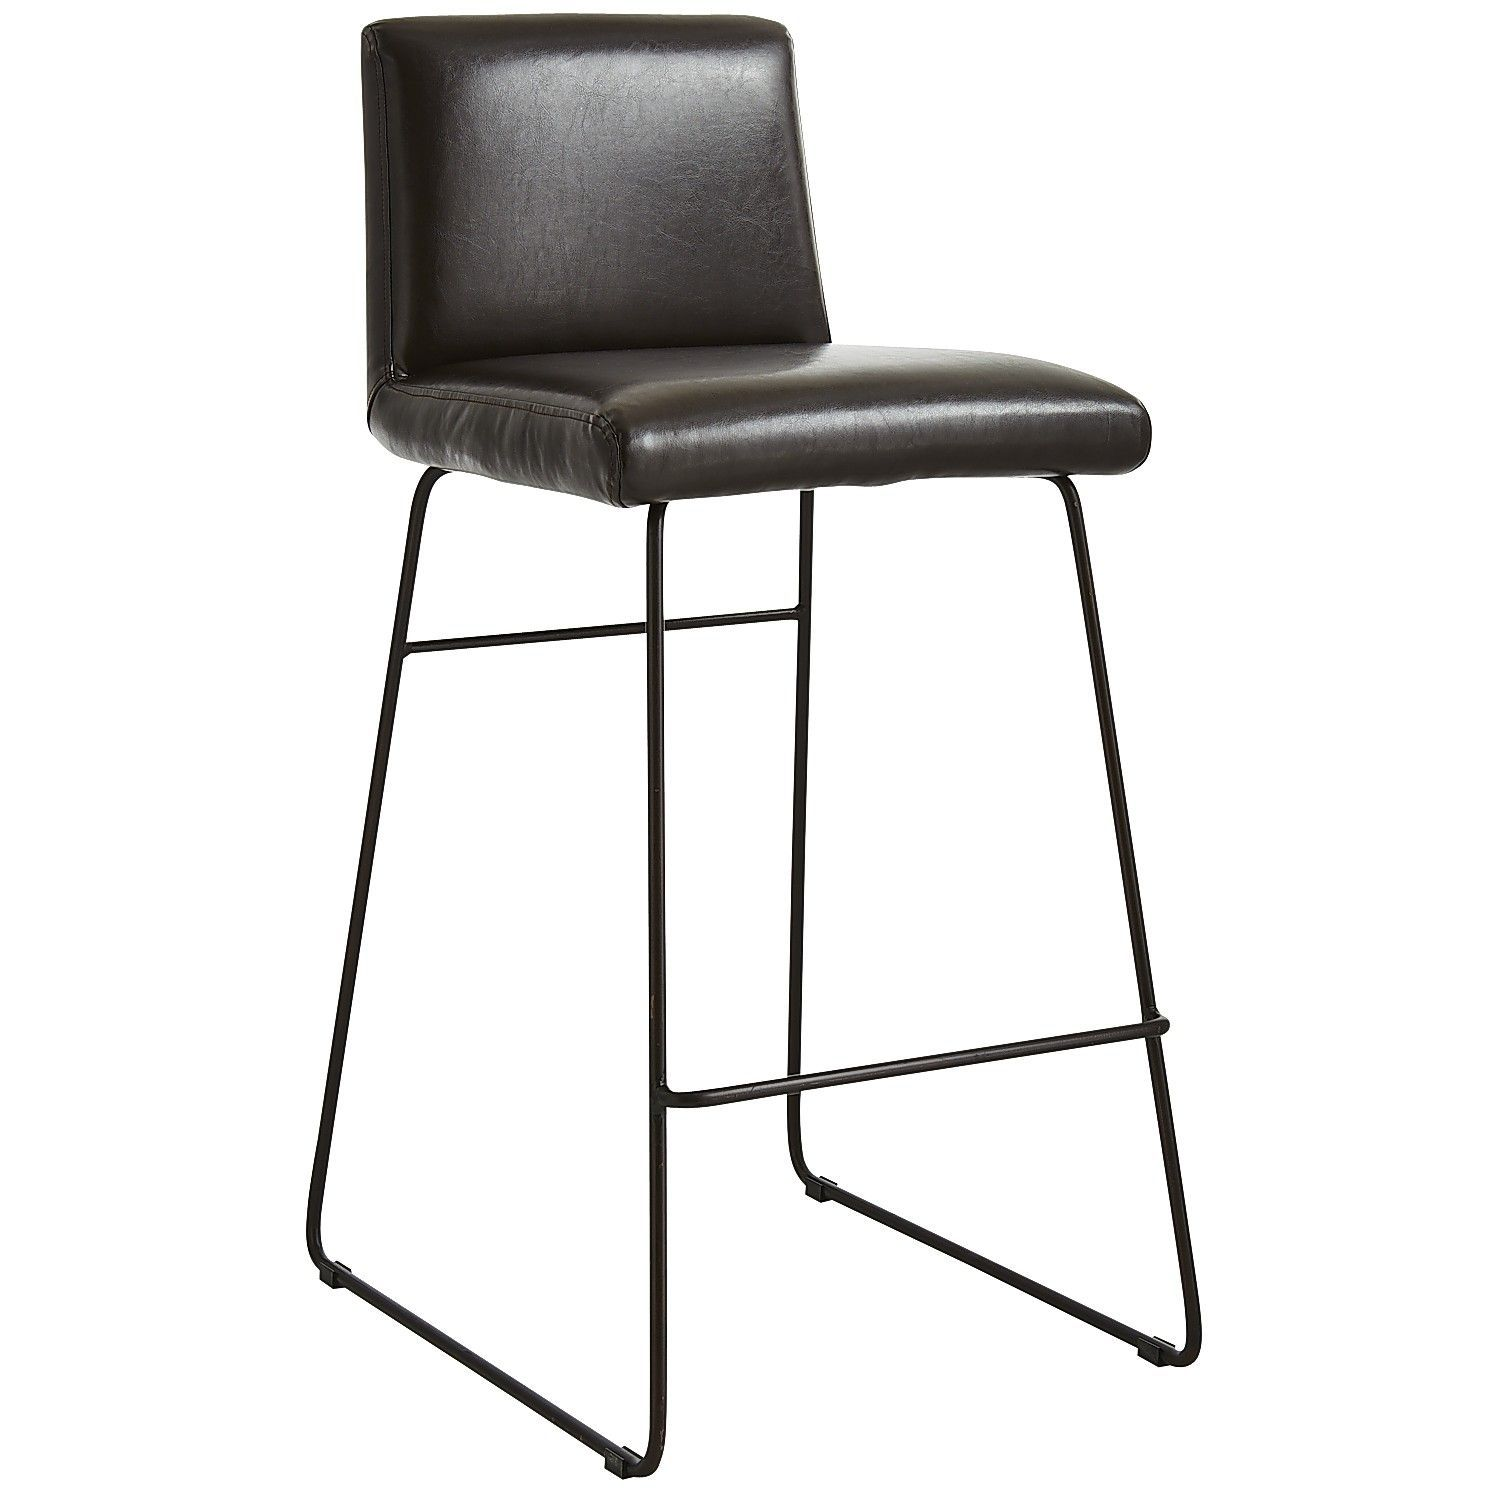 Lukas Bar & Counterstools Brown Pier 1 Imports